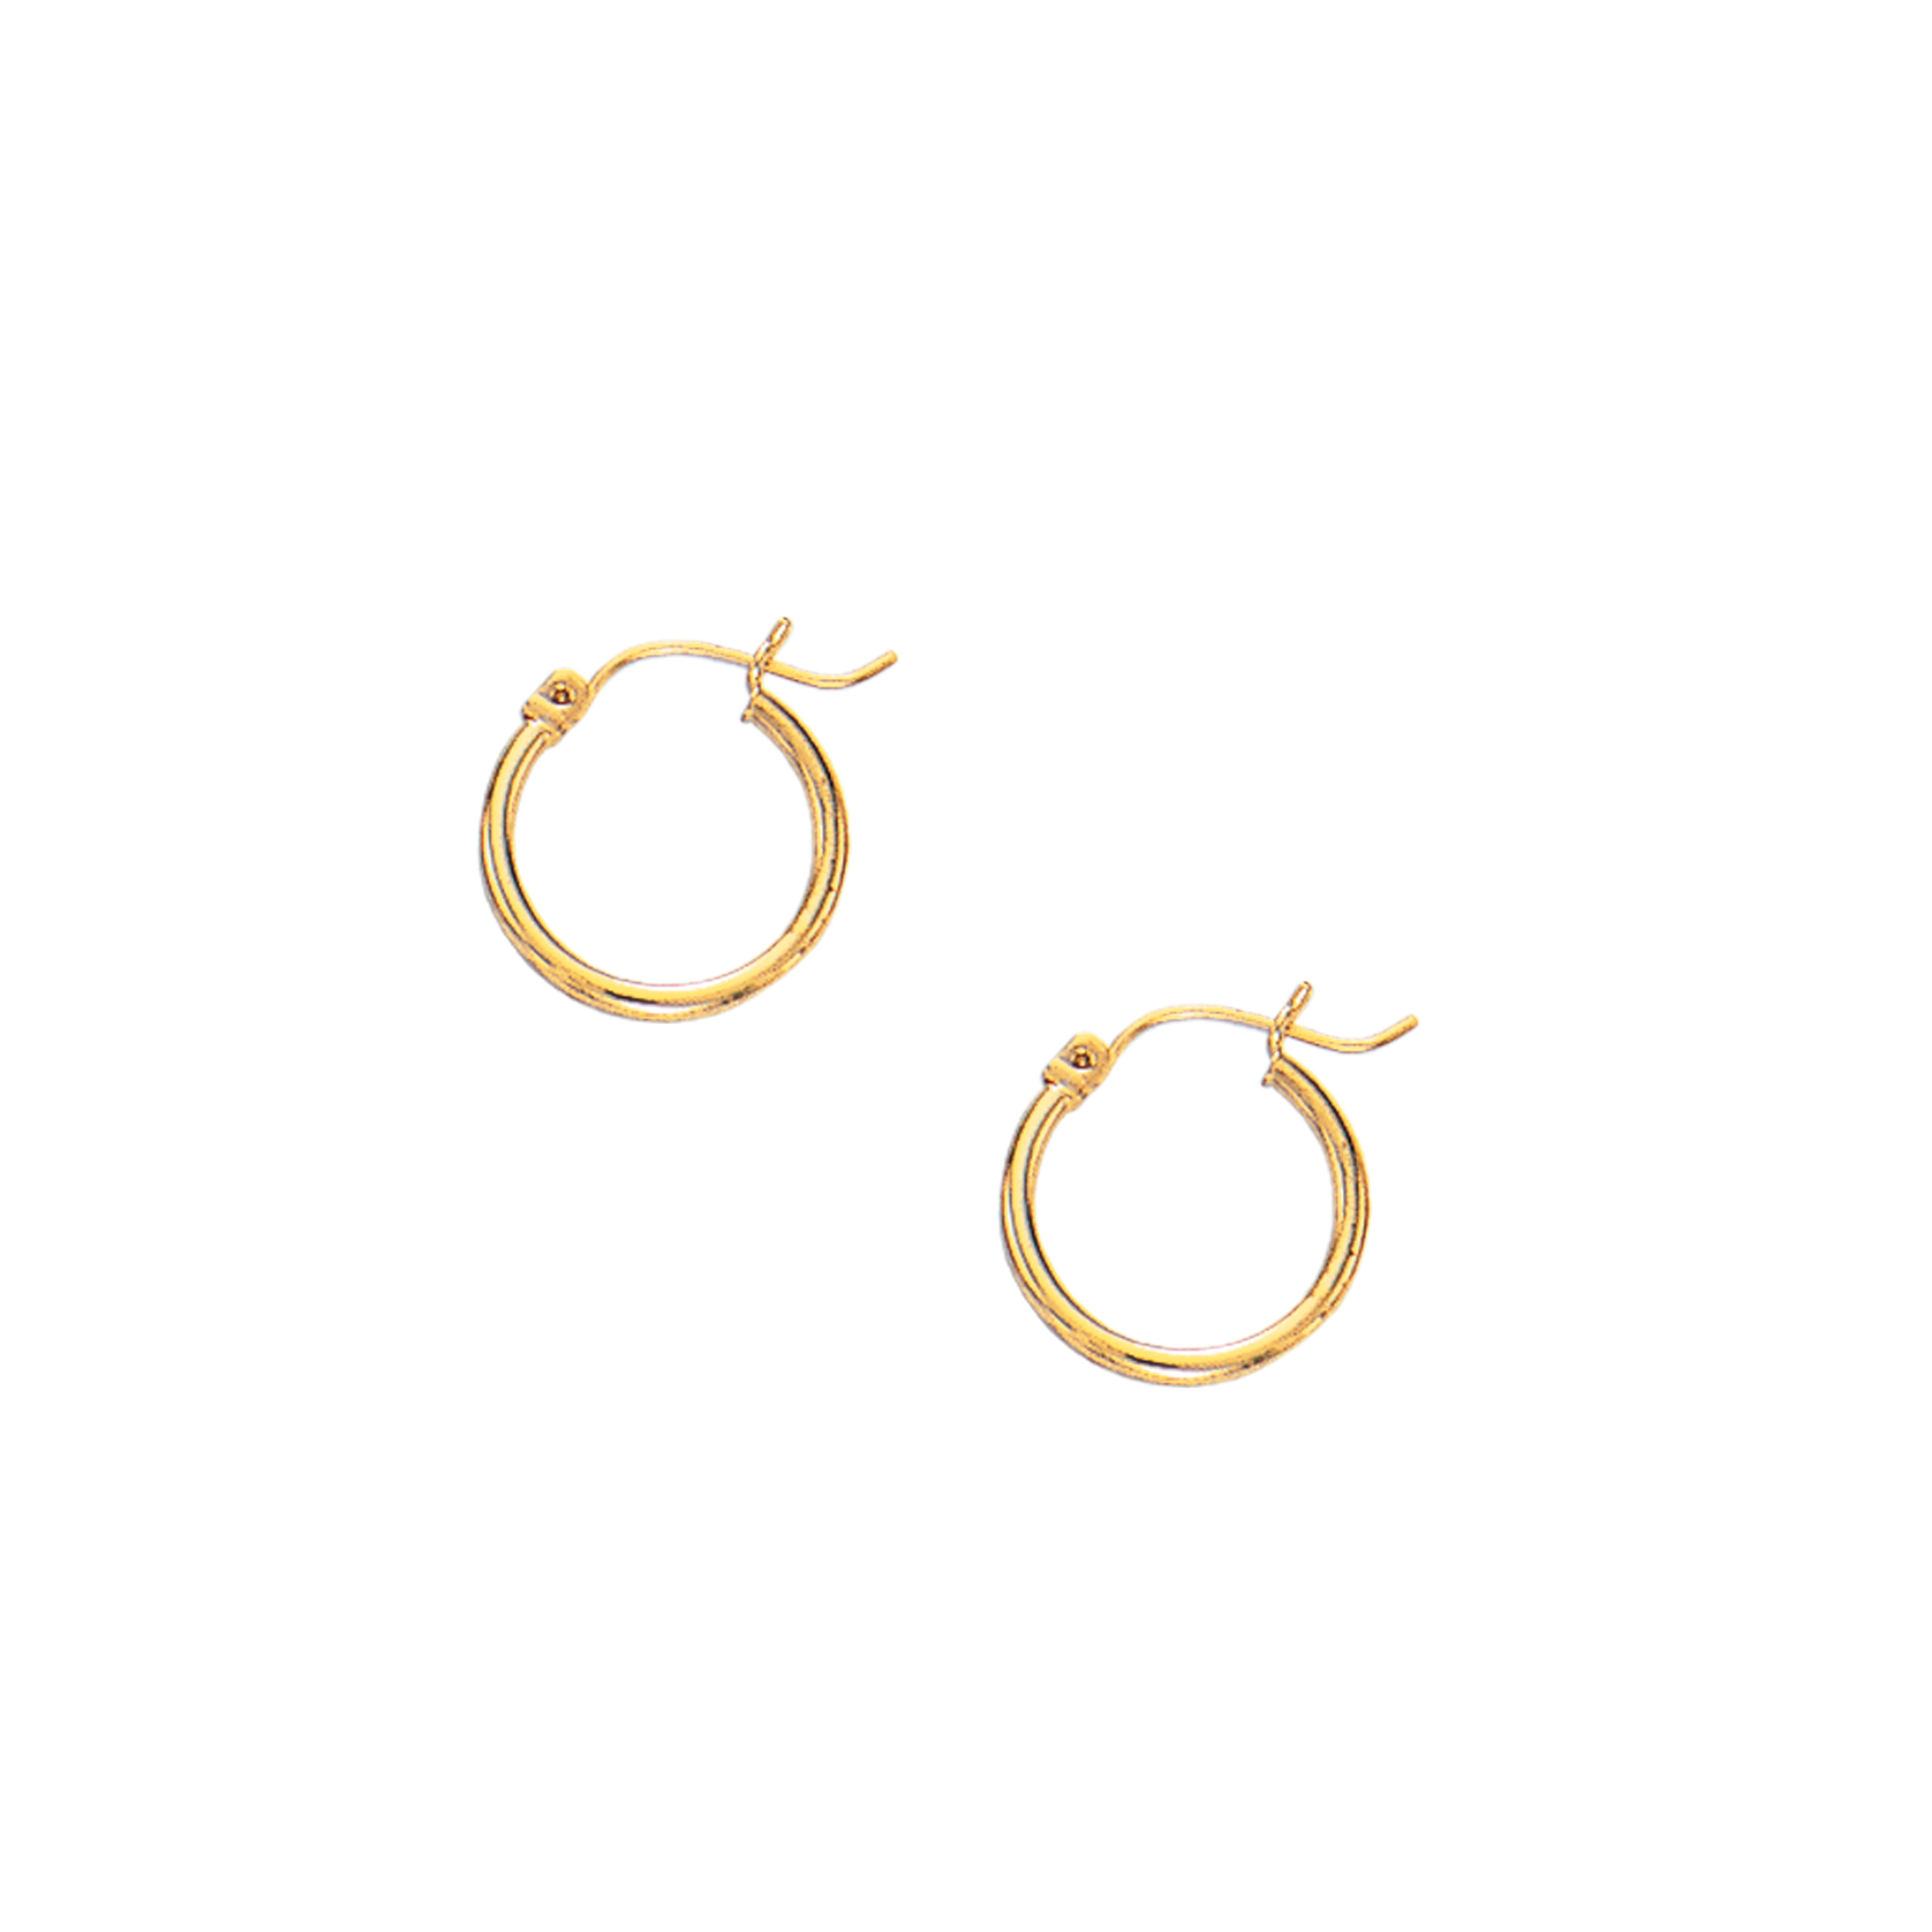 Ladies 10k Yellow Gold Earring Earrings Adair Jewelers  Missoula, MT